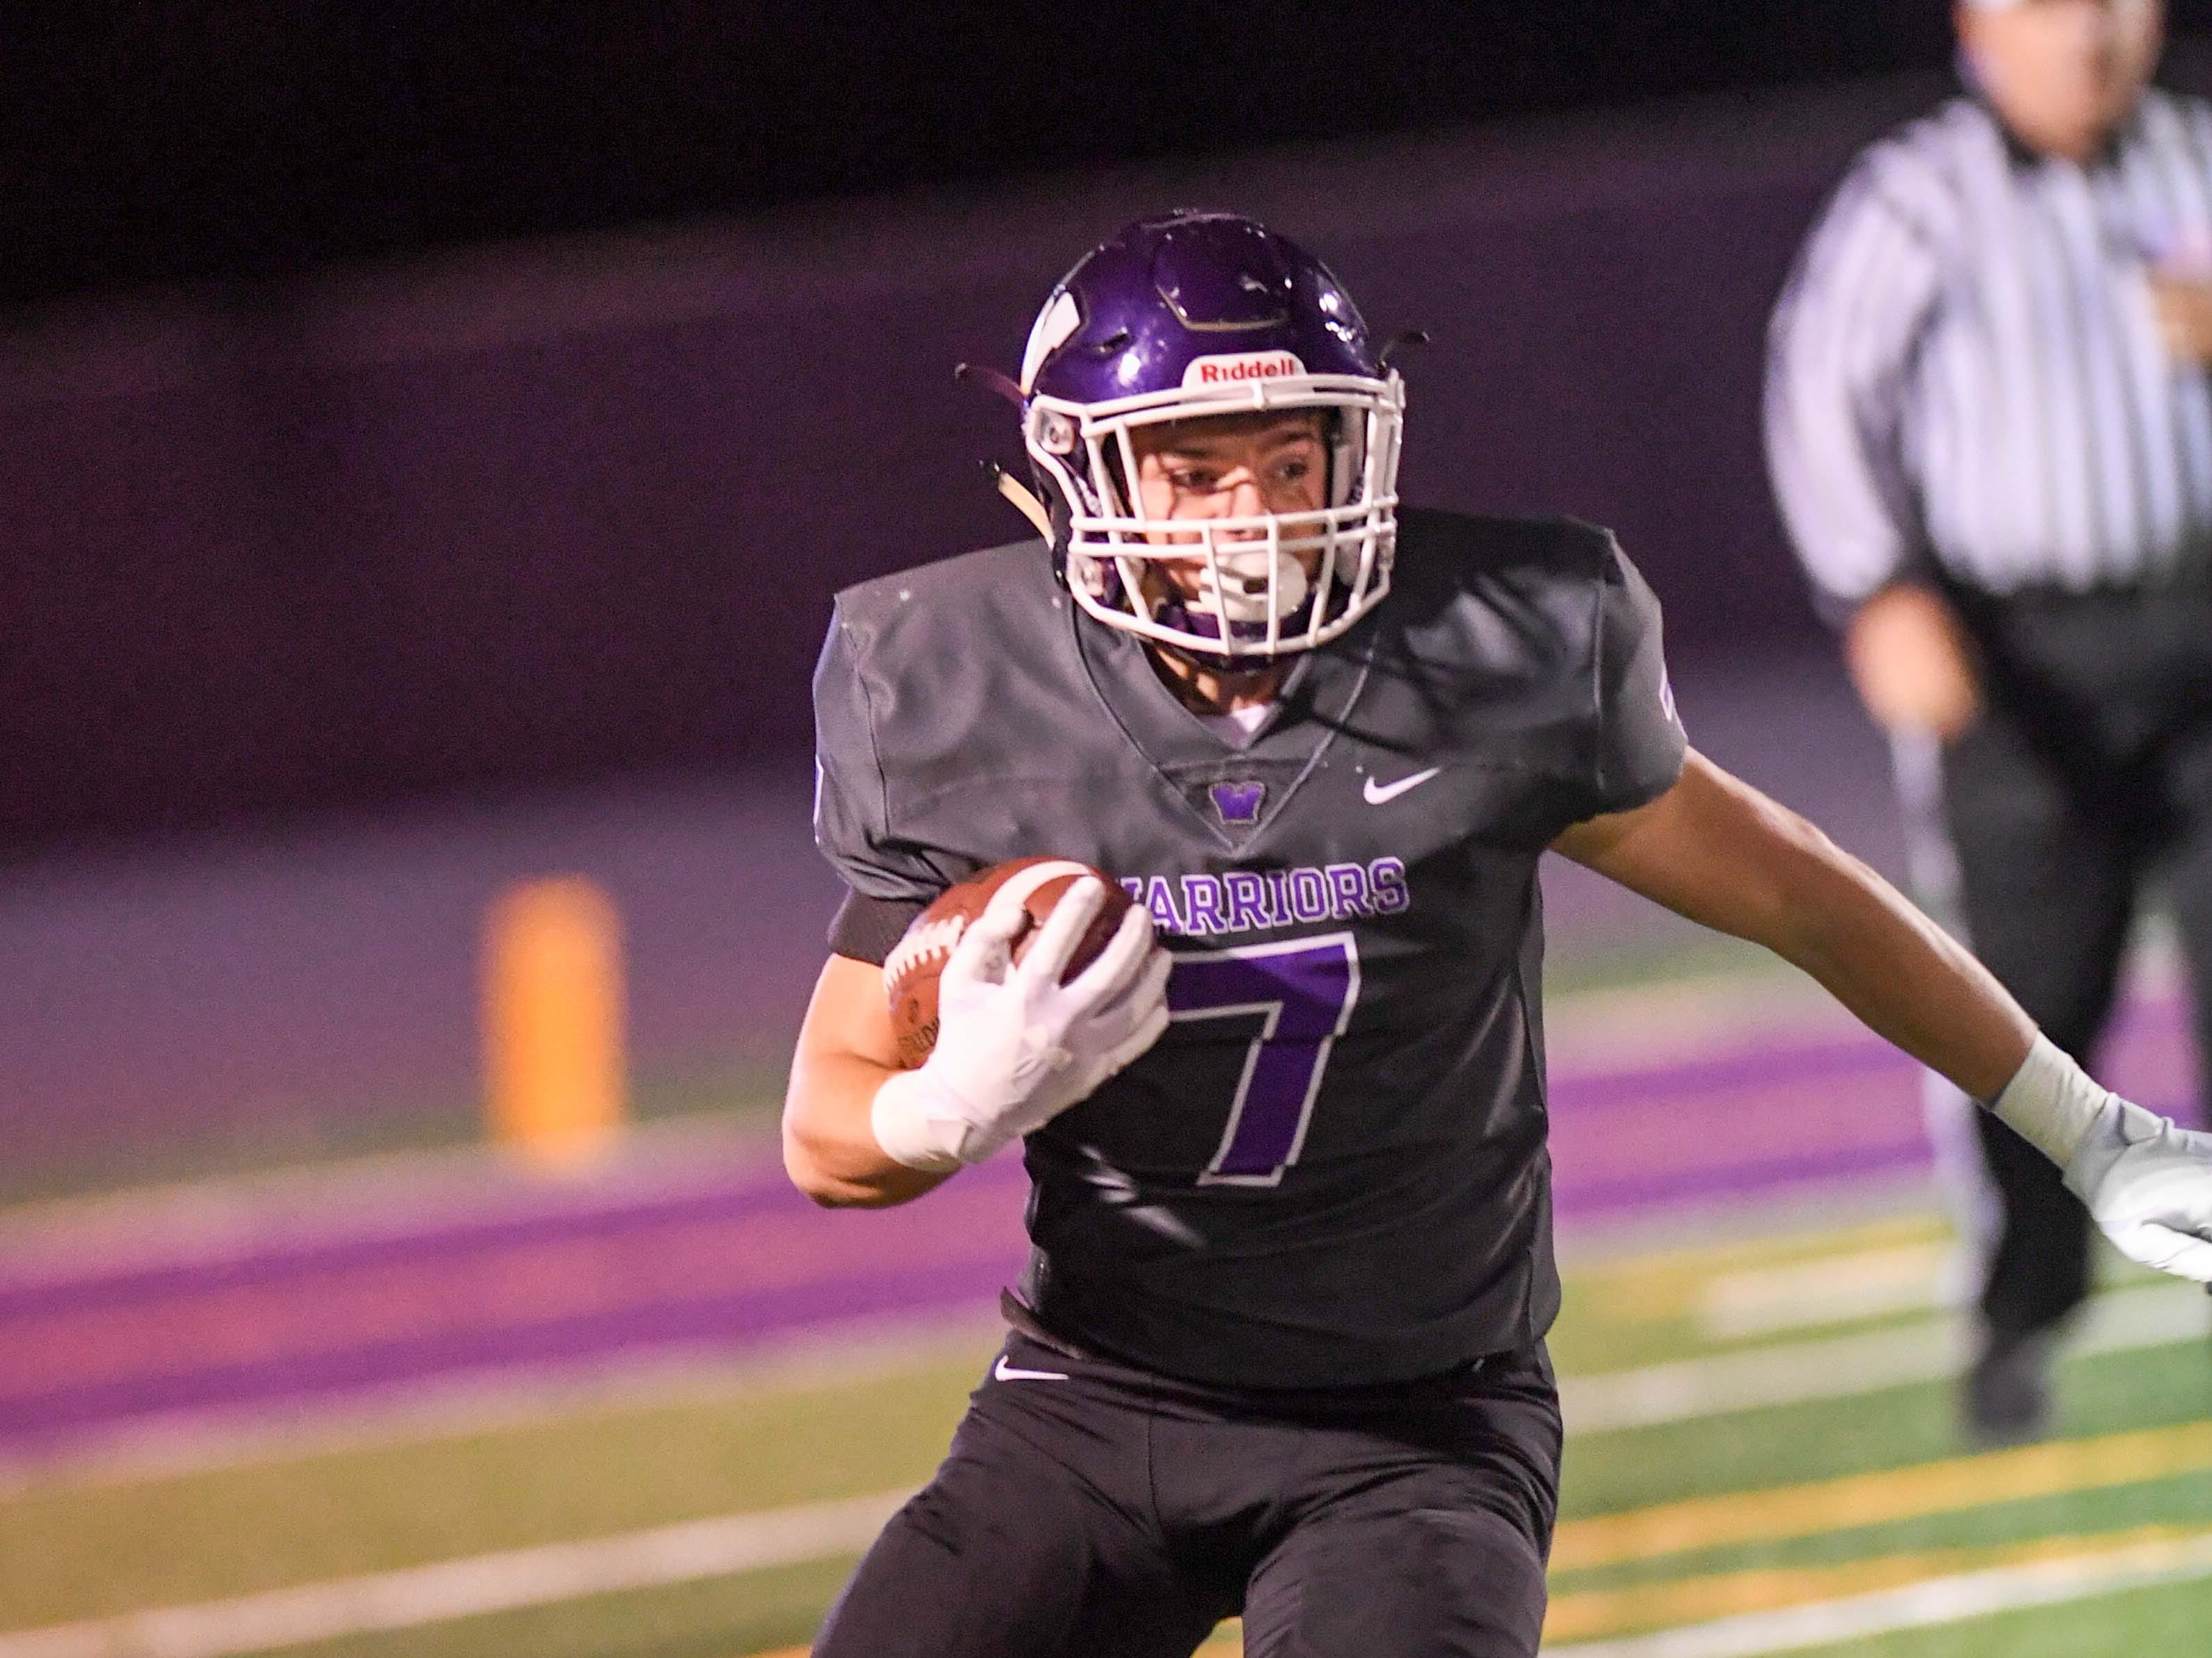 Waukee's Blake Espeland (7) runs the ball to open ground on Friday, Oct. 26, 2018 during a playoff game between the Waukee Warriors and the Urbandale J-Hawks at Waukee High School.